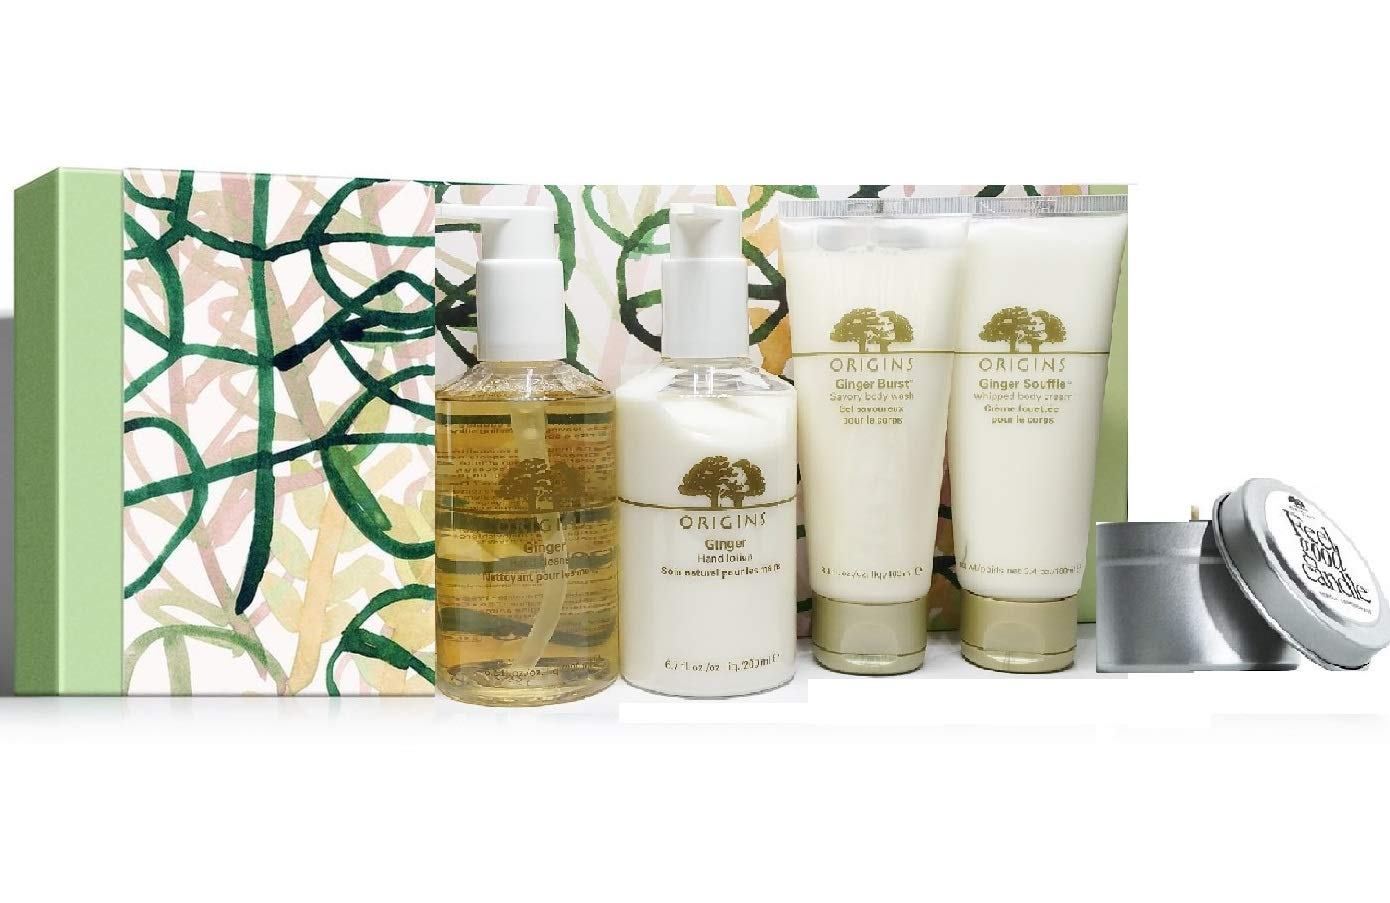 Origins Ginger Gift Set (5 Full Size Pieces) - Lotion, Cleanser, Body Wash, Whipped Body Cream & Candle.